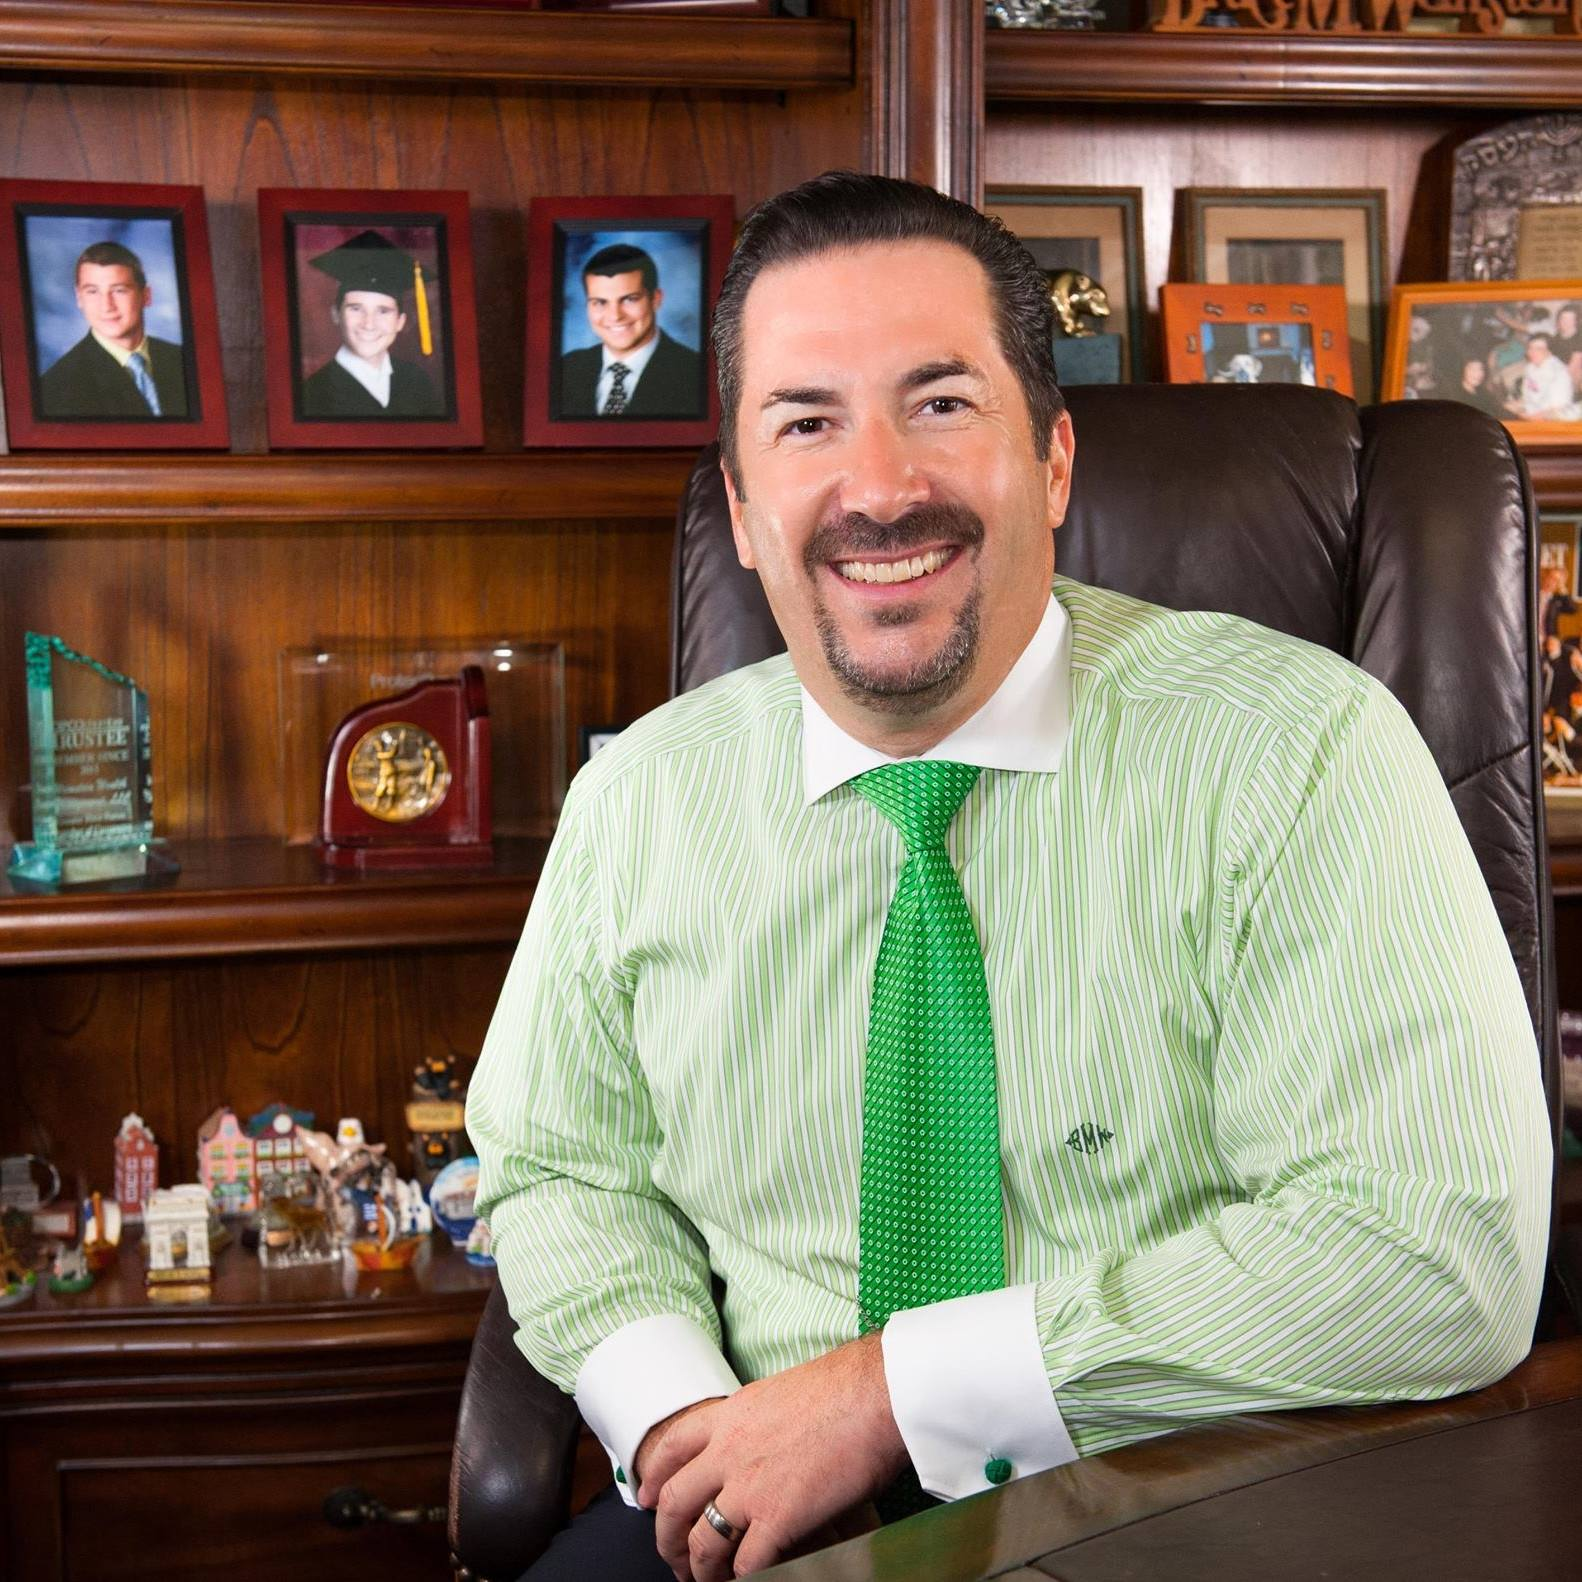 Bruce M. Weinstein owner of weinstein wealth insurance solution